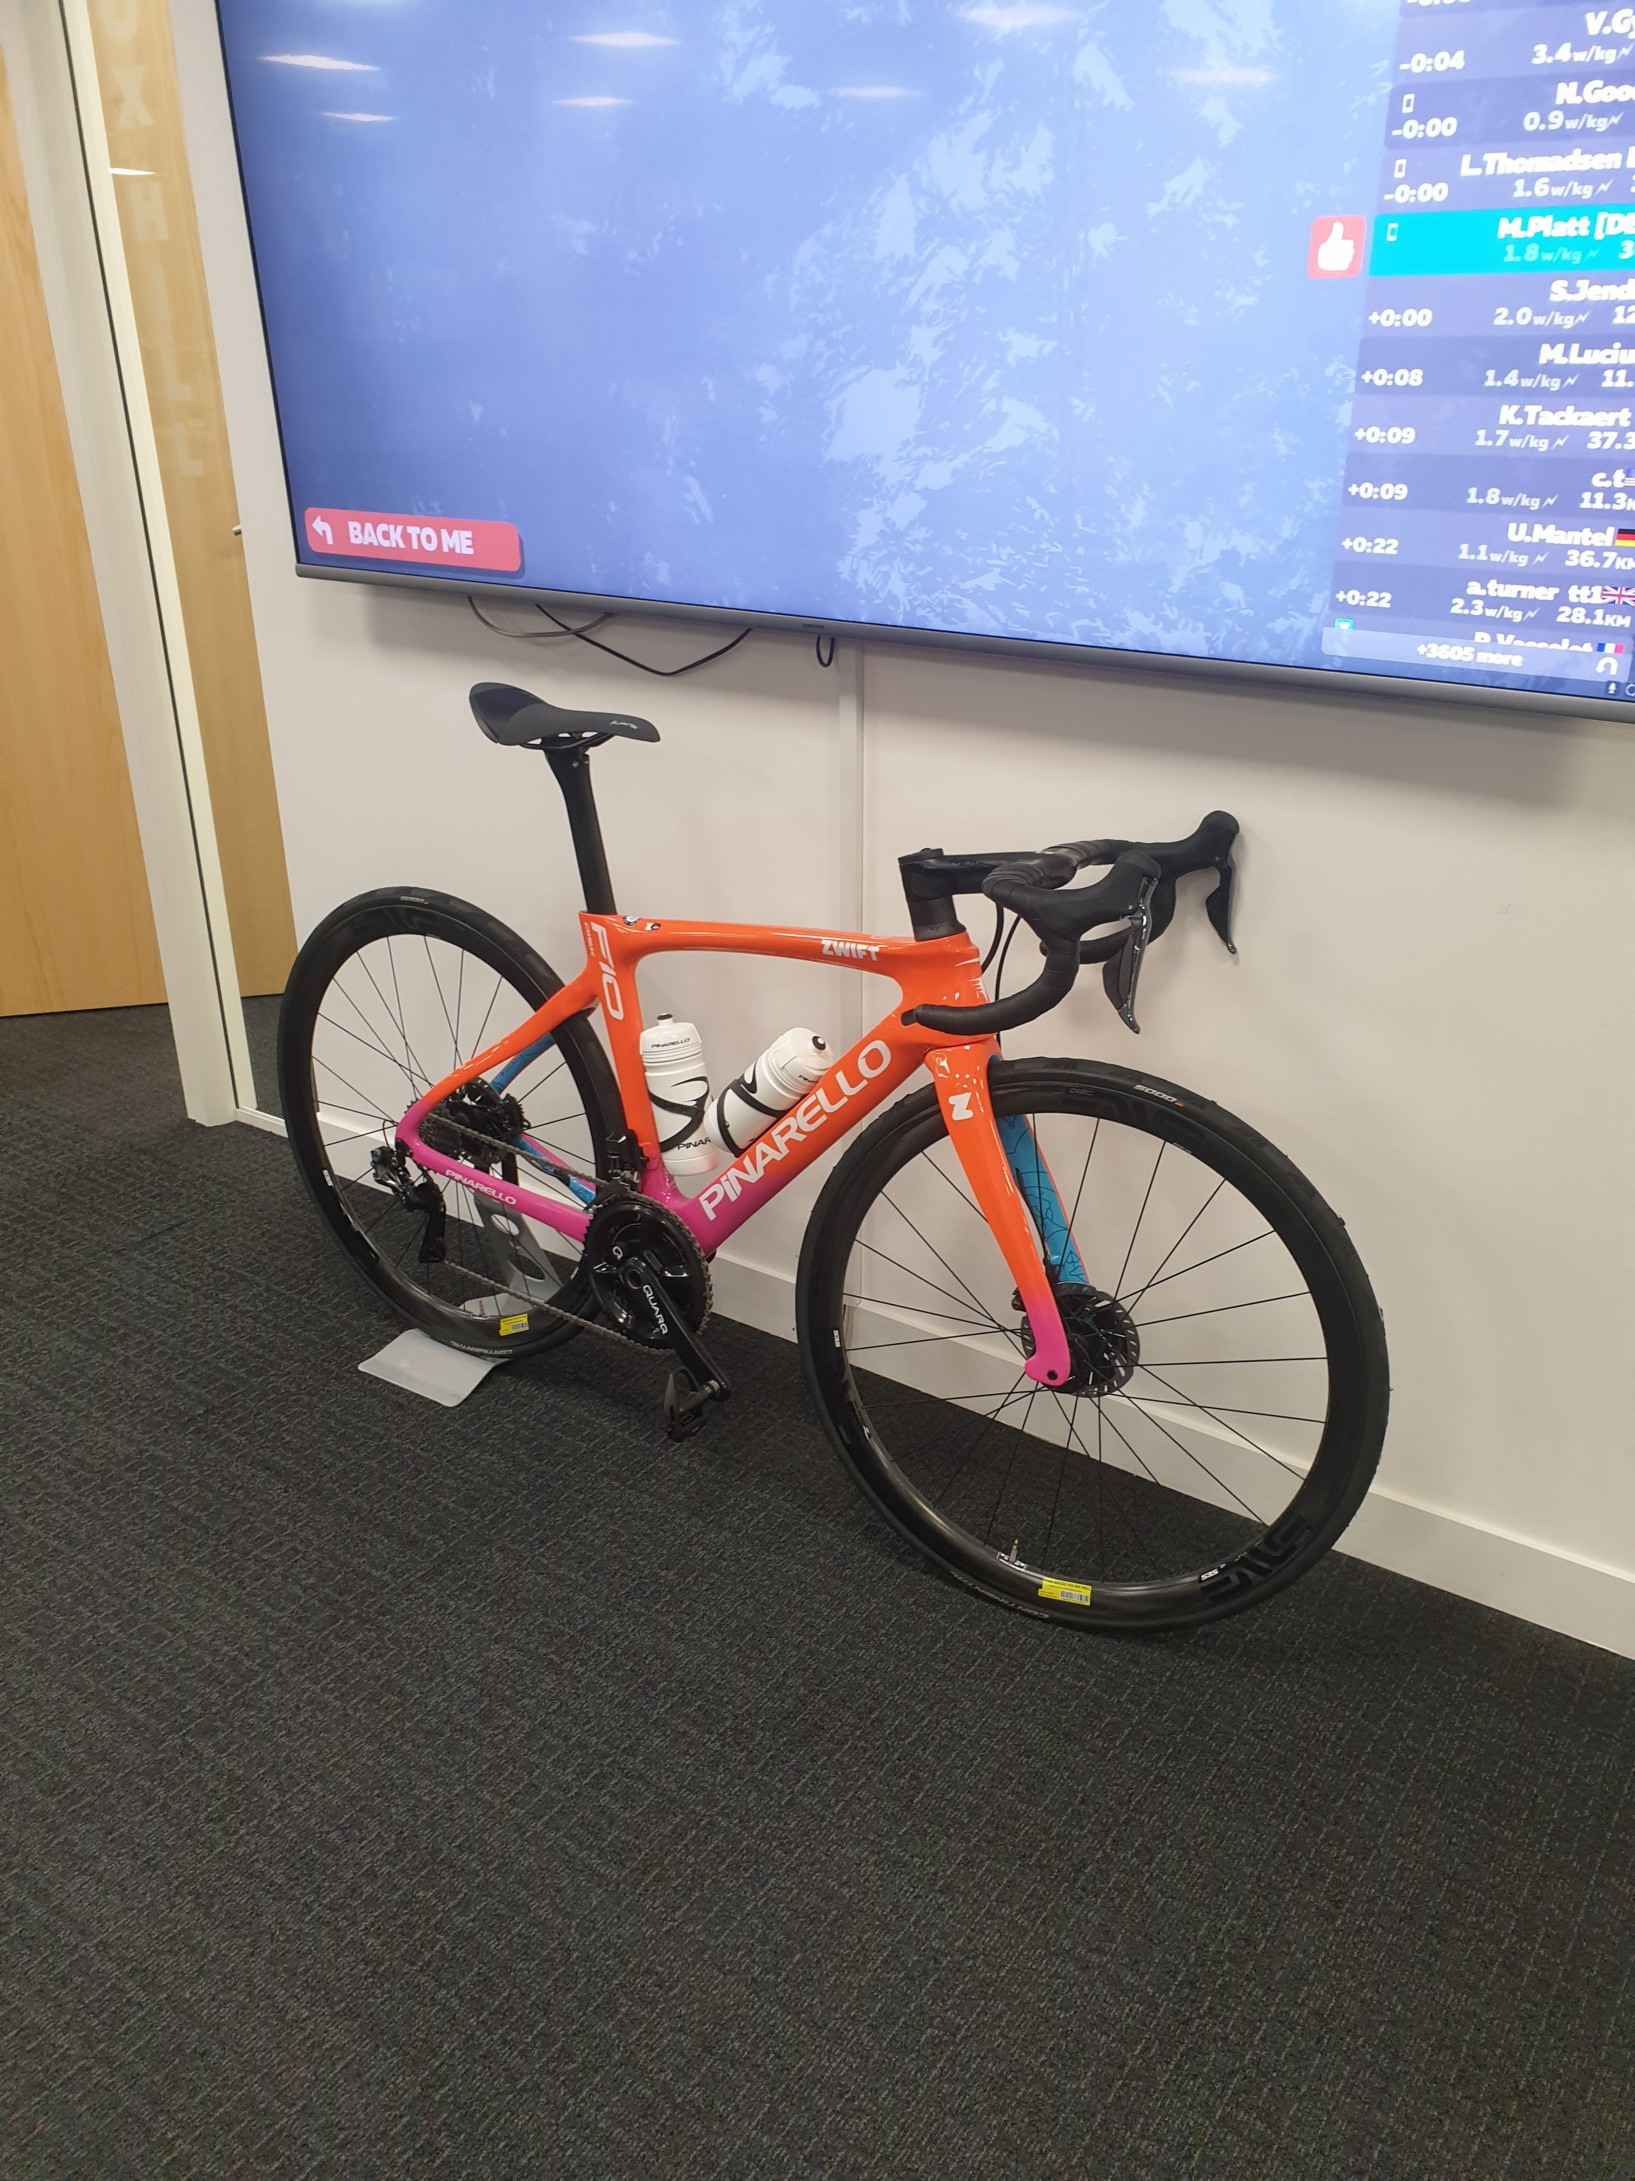 An orange road bike underneath a large wall-mounted TV in an office